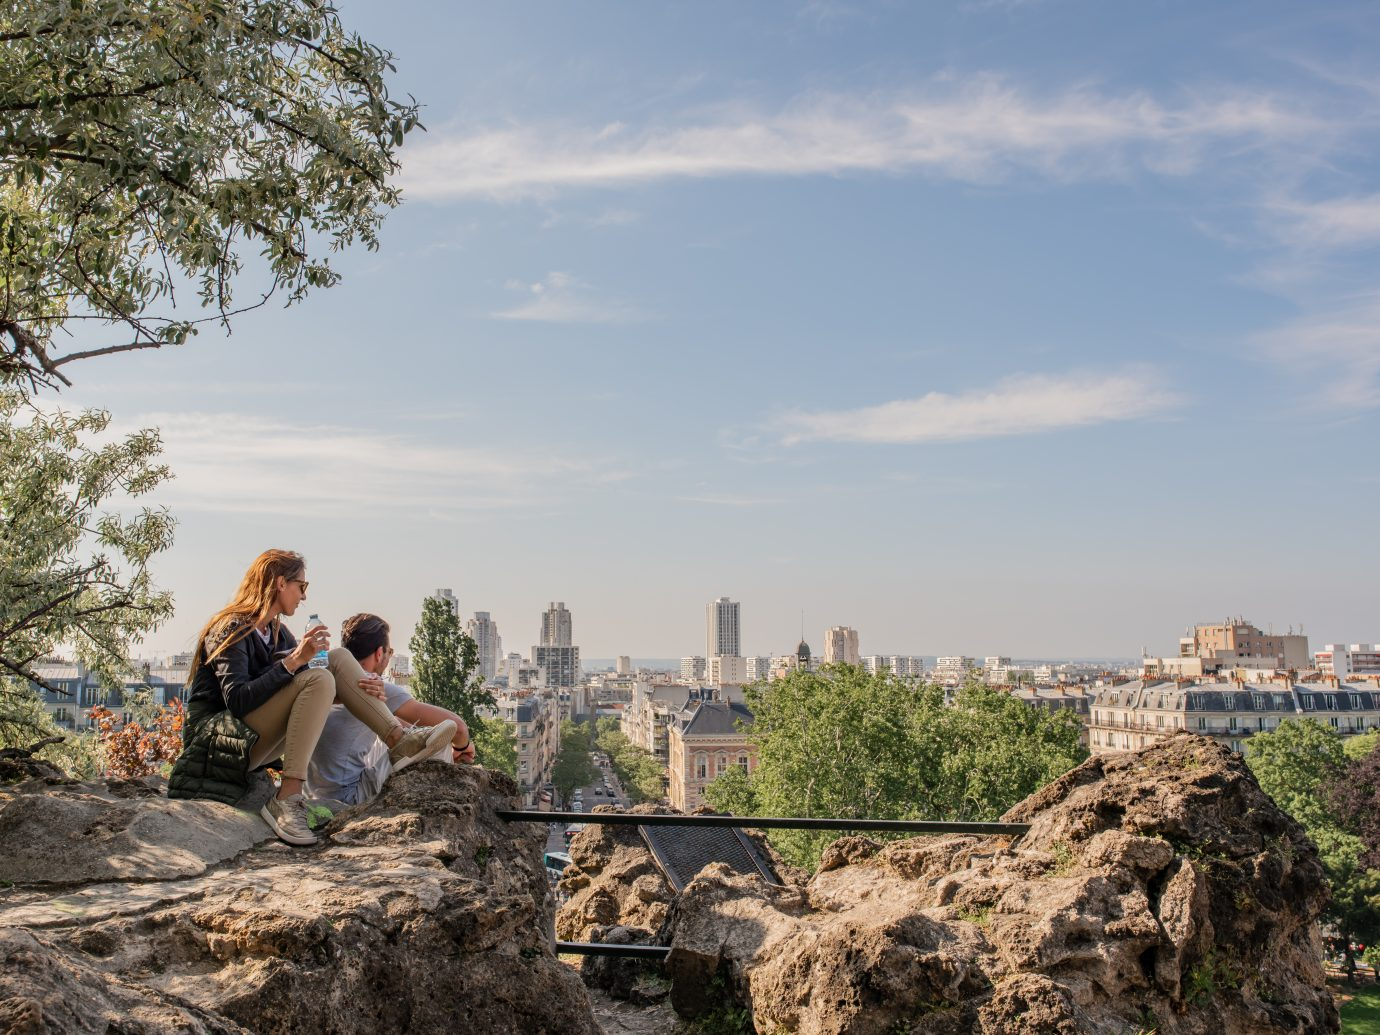 Friends climb a rock on a hill in Parc des Buttes Chaumont